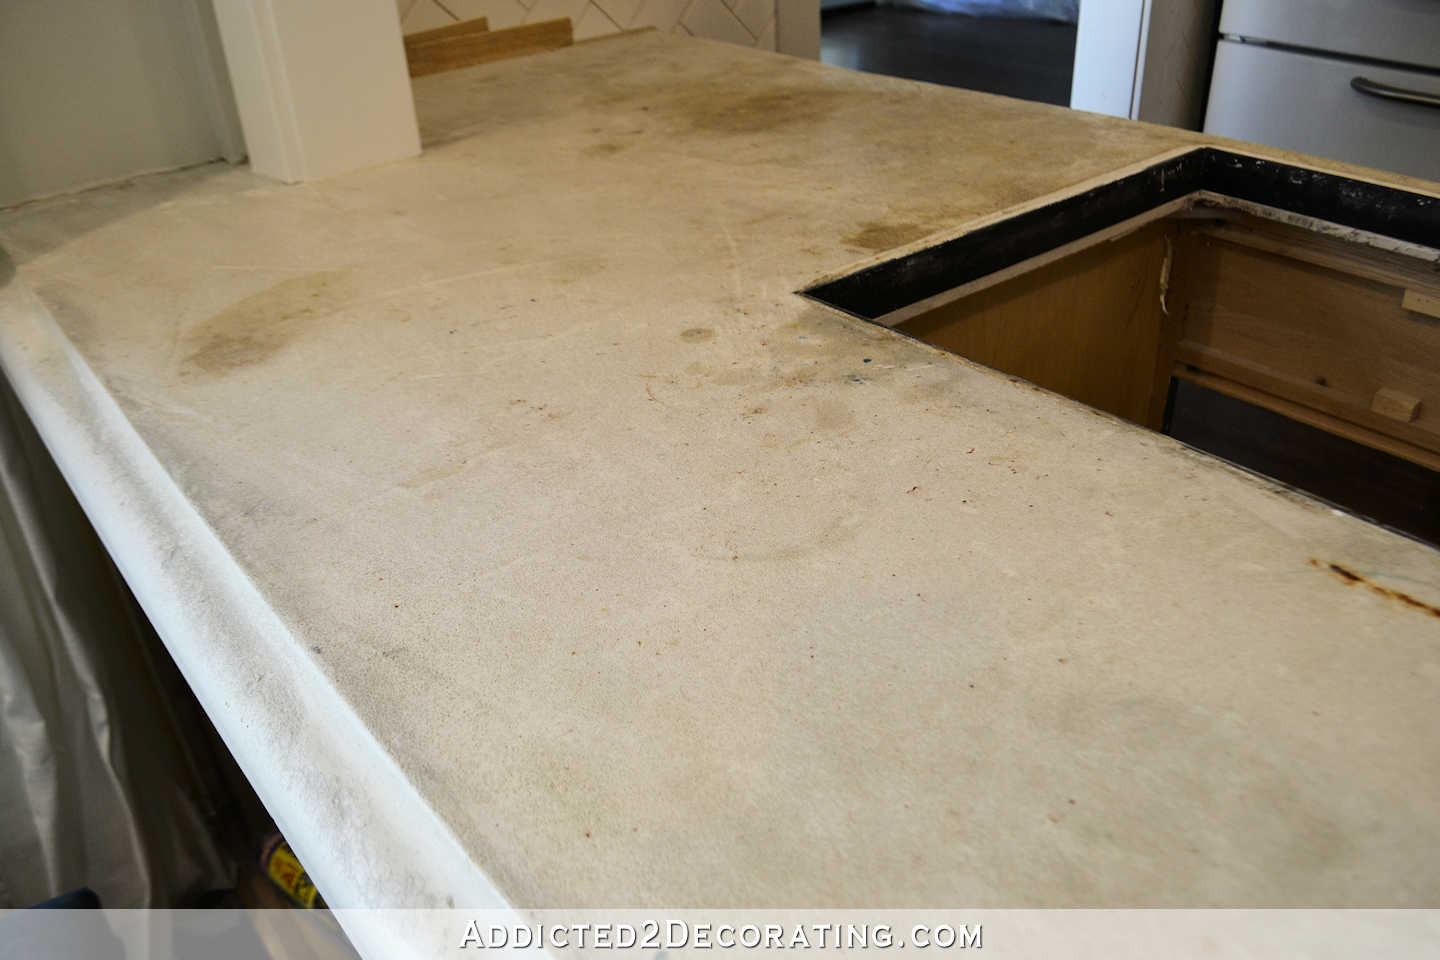 How Much Is Concrete Countertops Refinishing My Concrete Kitchen Countertops Part 1